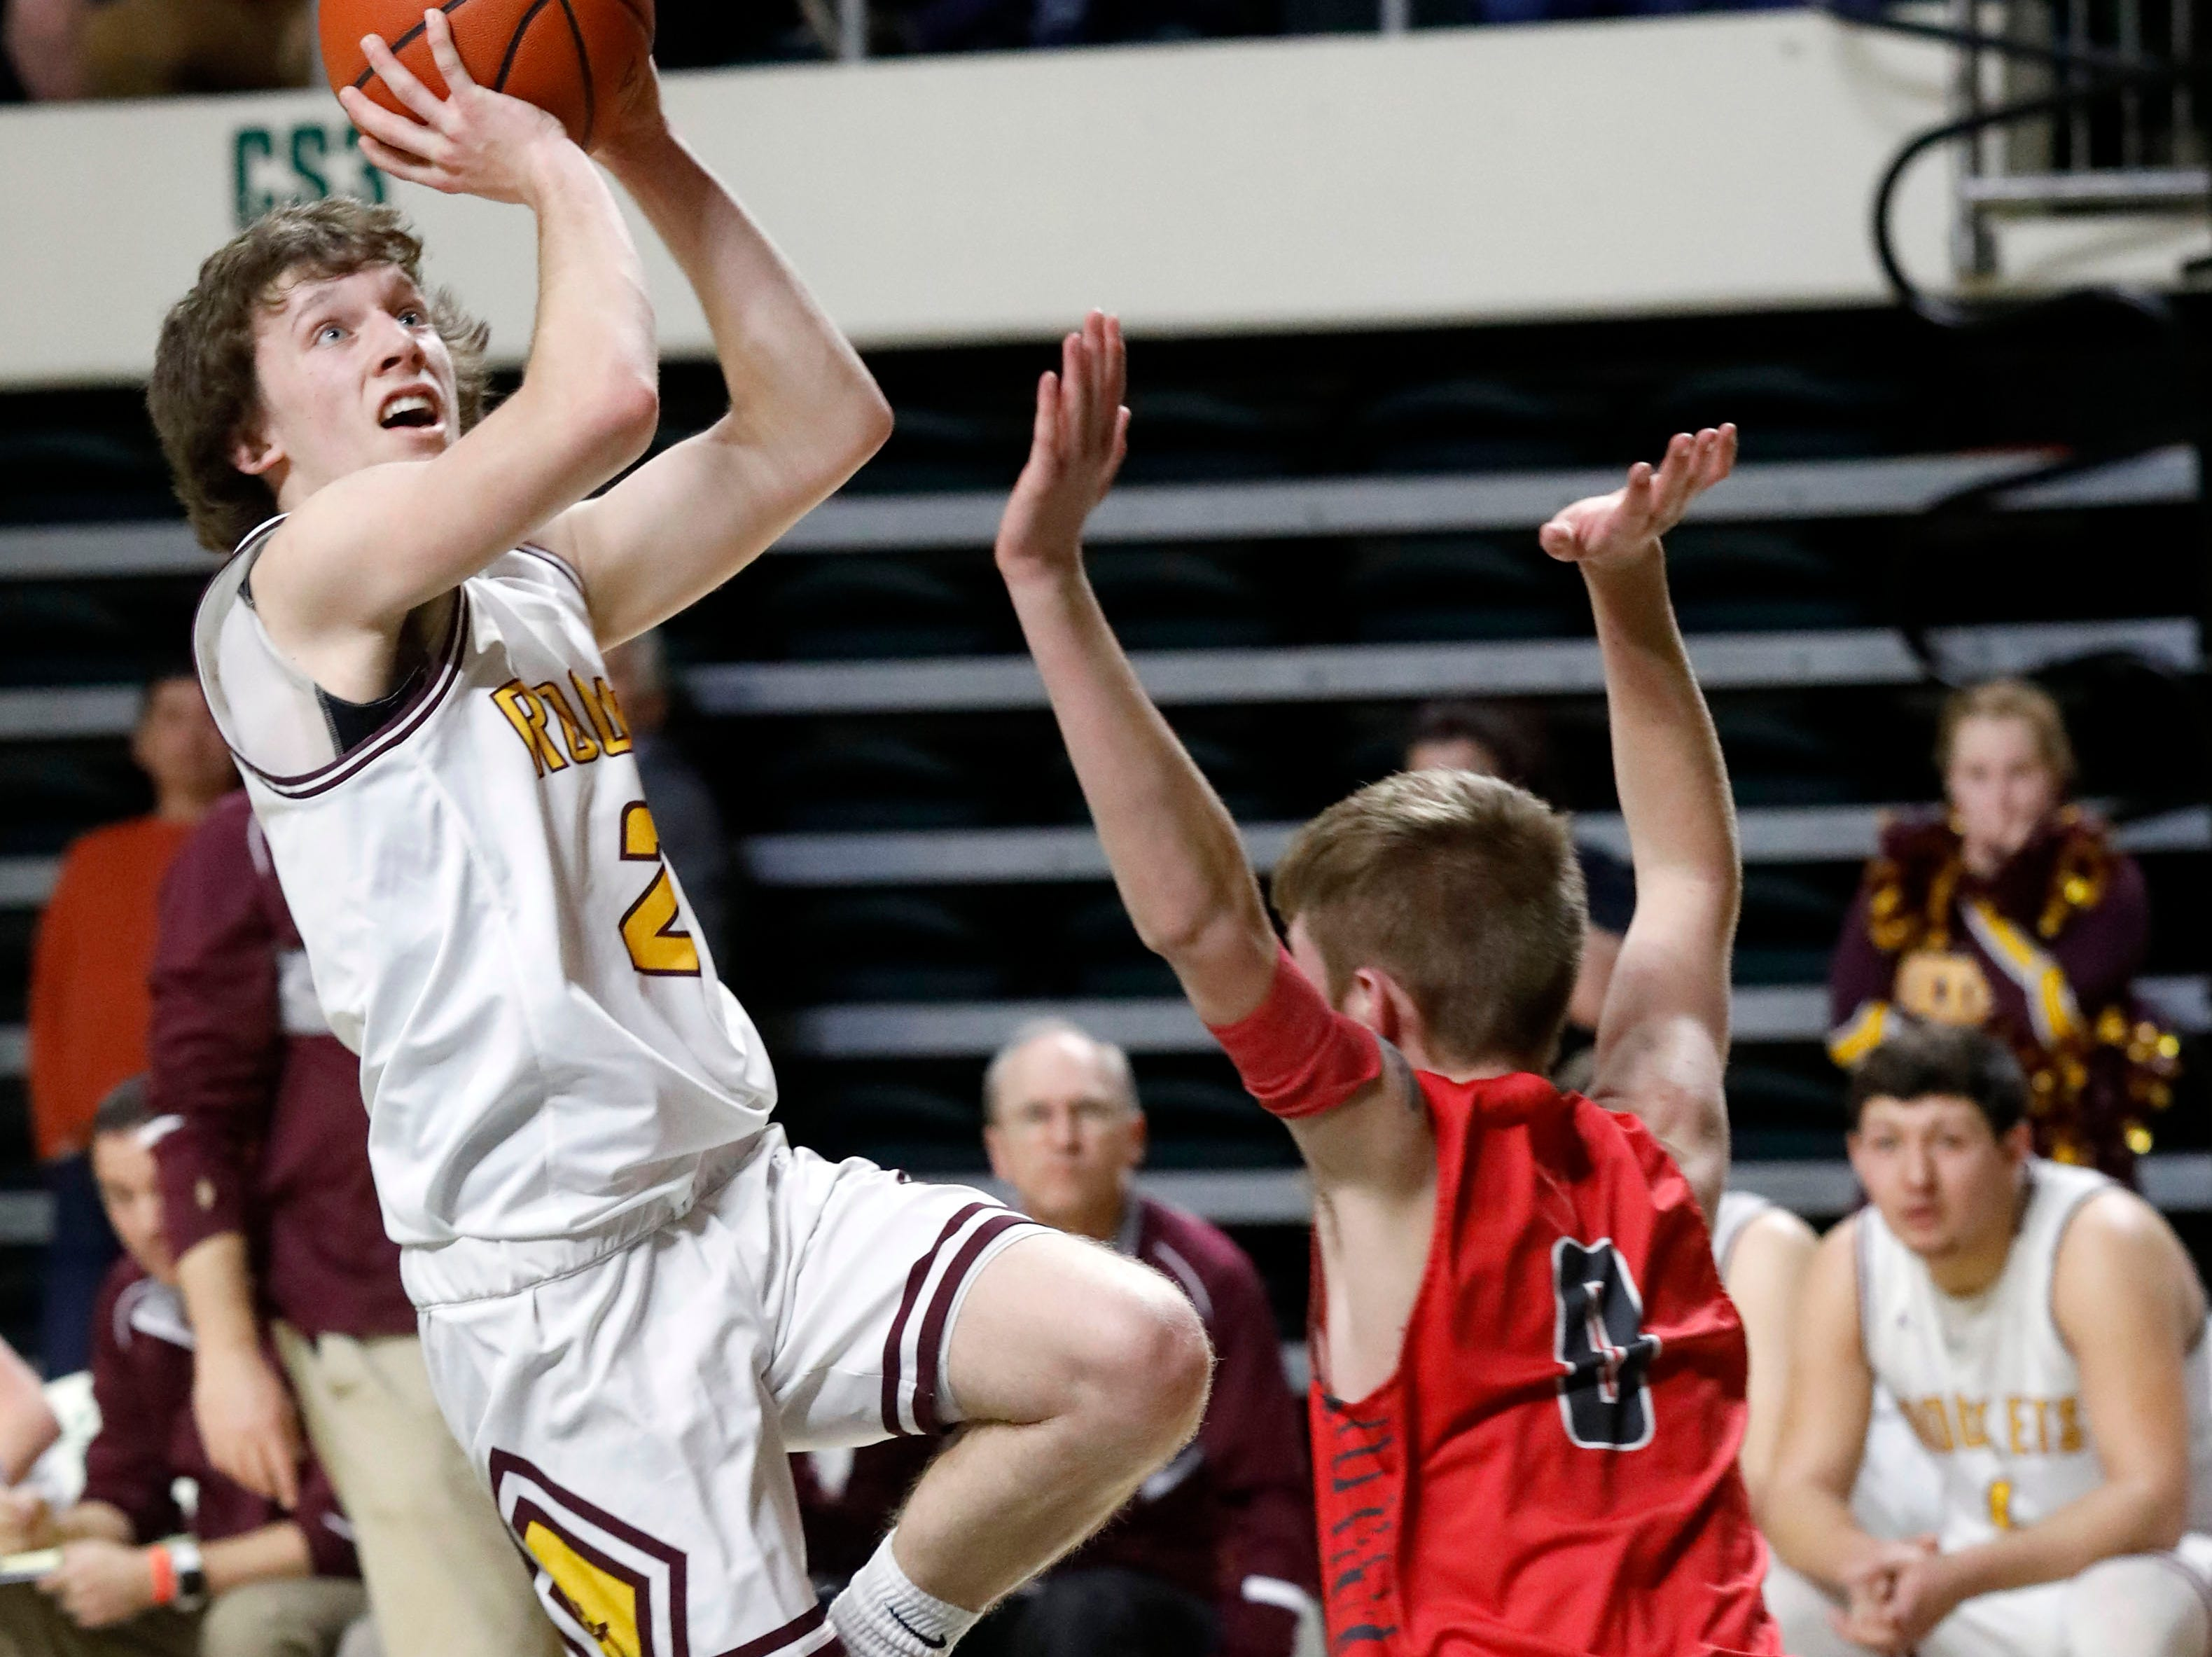 Berne Union's Chase McCartney takes a shot over Glenwood's Malachi Potts during Tuesday's Division IV Regional Semifinal game, March 12, 2019, at the Ohio University Convocation Center in Athens. The Rockets lost the 69-64.